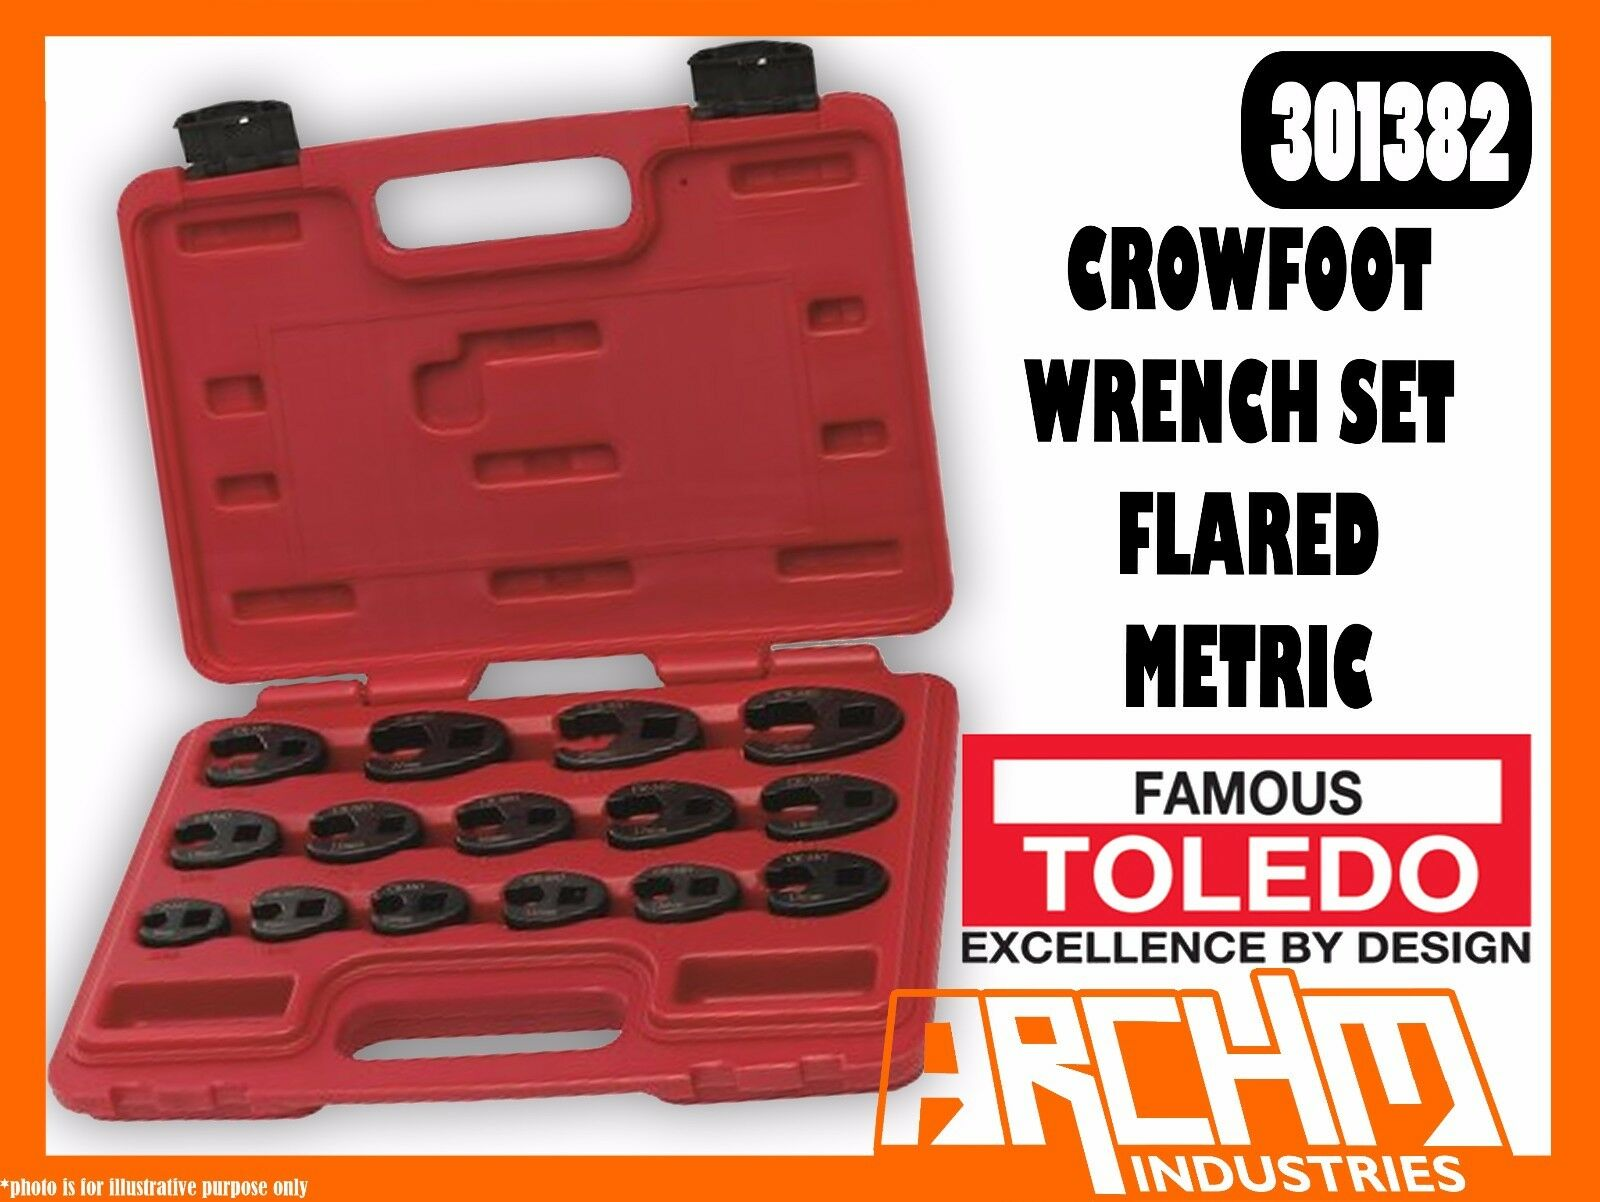 TOLEDO 301382 - CROWFOOT WRENCH SET FLARED 3 8  & 1 2  - METRIC (8 - 24MM) 15 PC